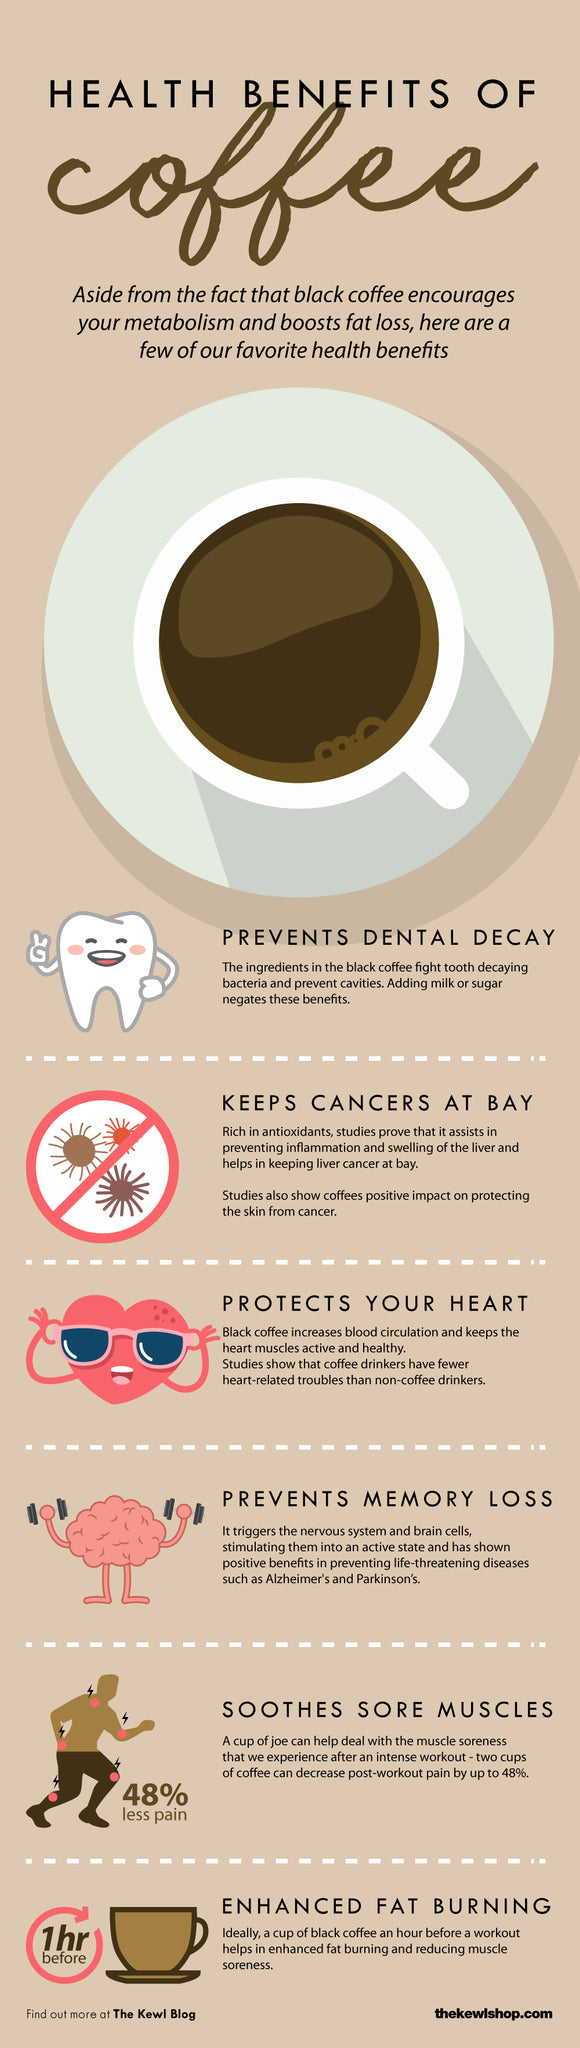 Can Coffee Uptick Your Metabolism and Help You Burn Fat?, Infographic